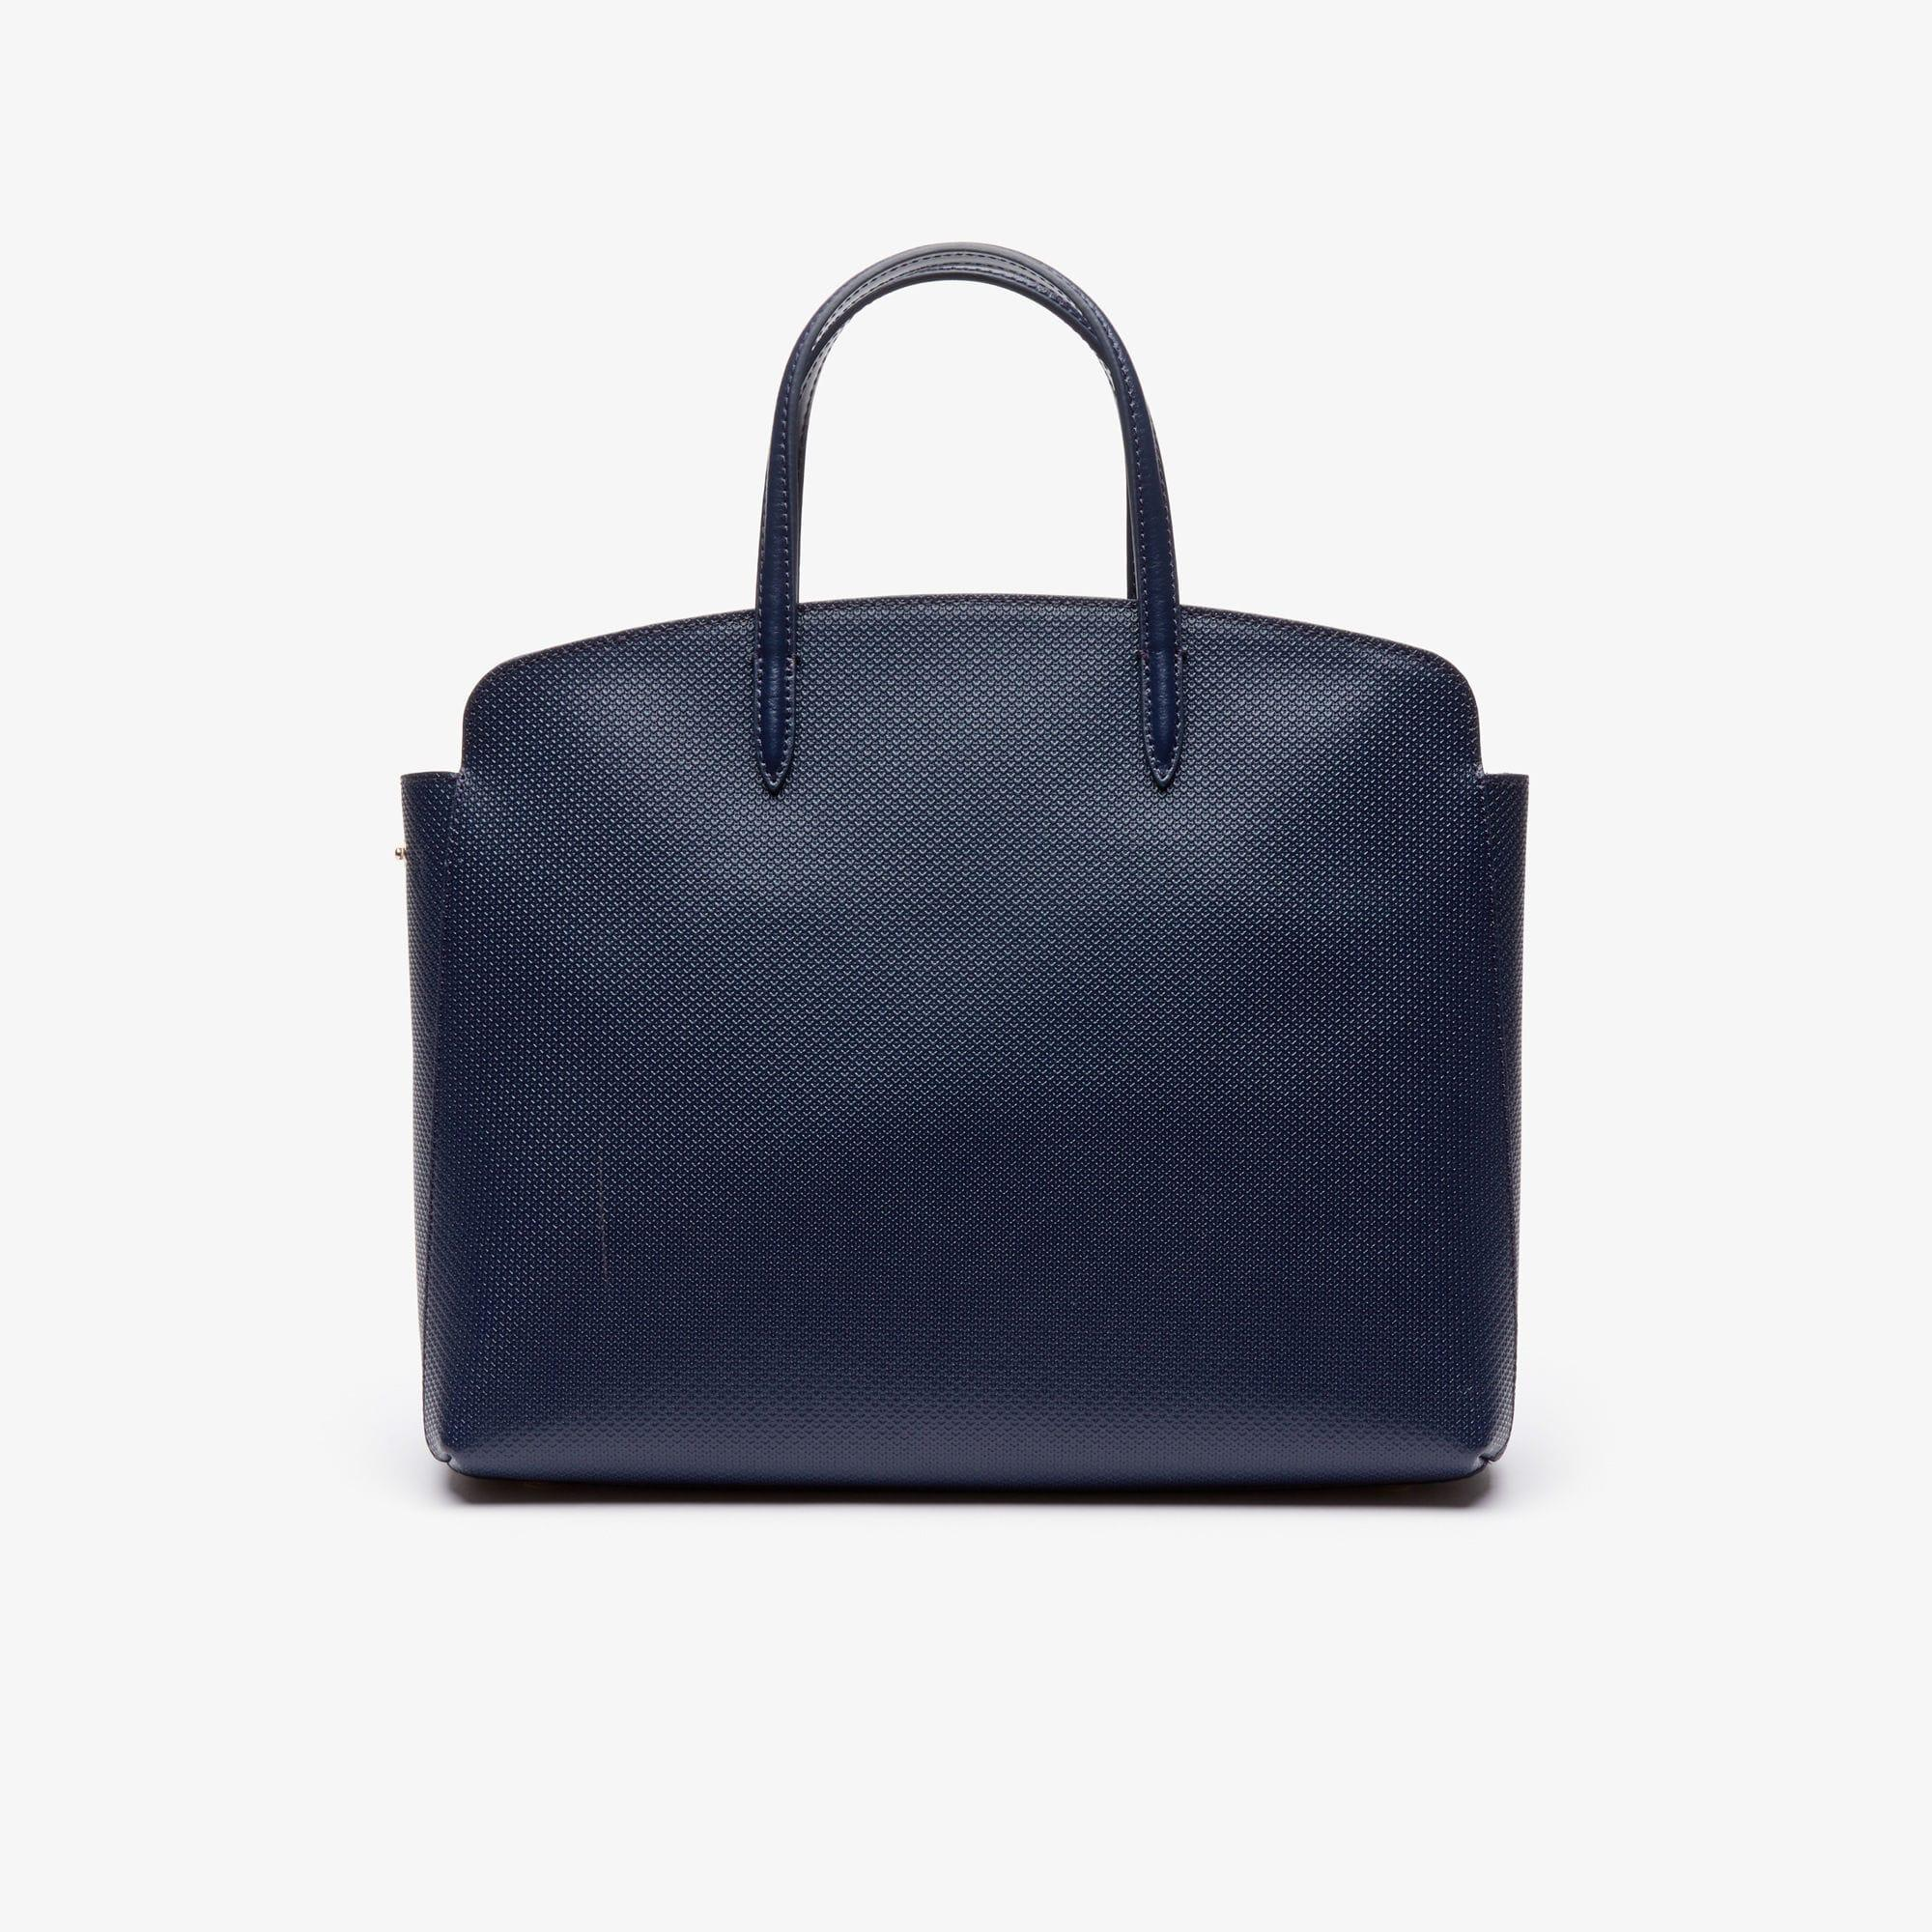 67f5e7538c Lacoste Chantaco Leather Zip Pocket Tote Bag in Blue - Lyst